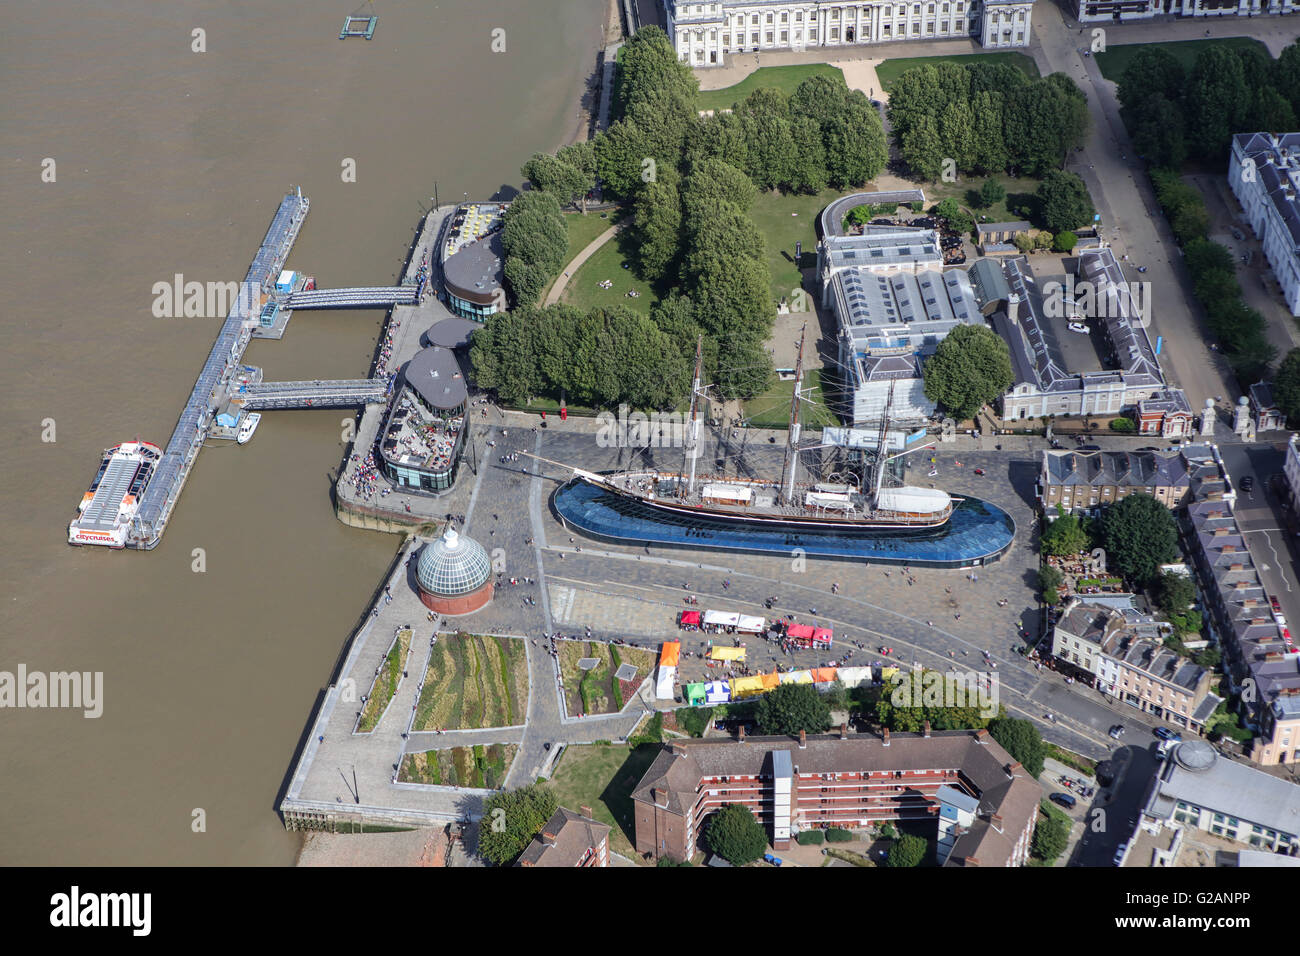 An aerial view of the Cutty Sark a tea clipper and now tourist attraction in Greenwich, London Stock Photo